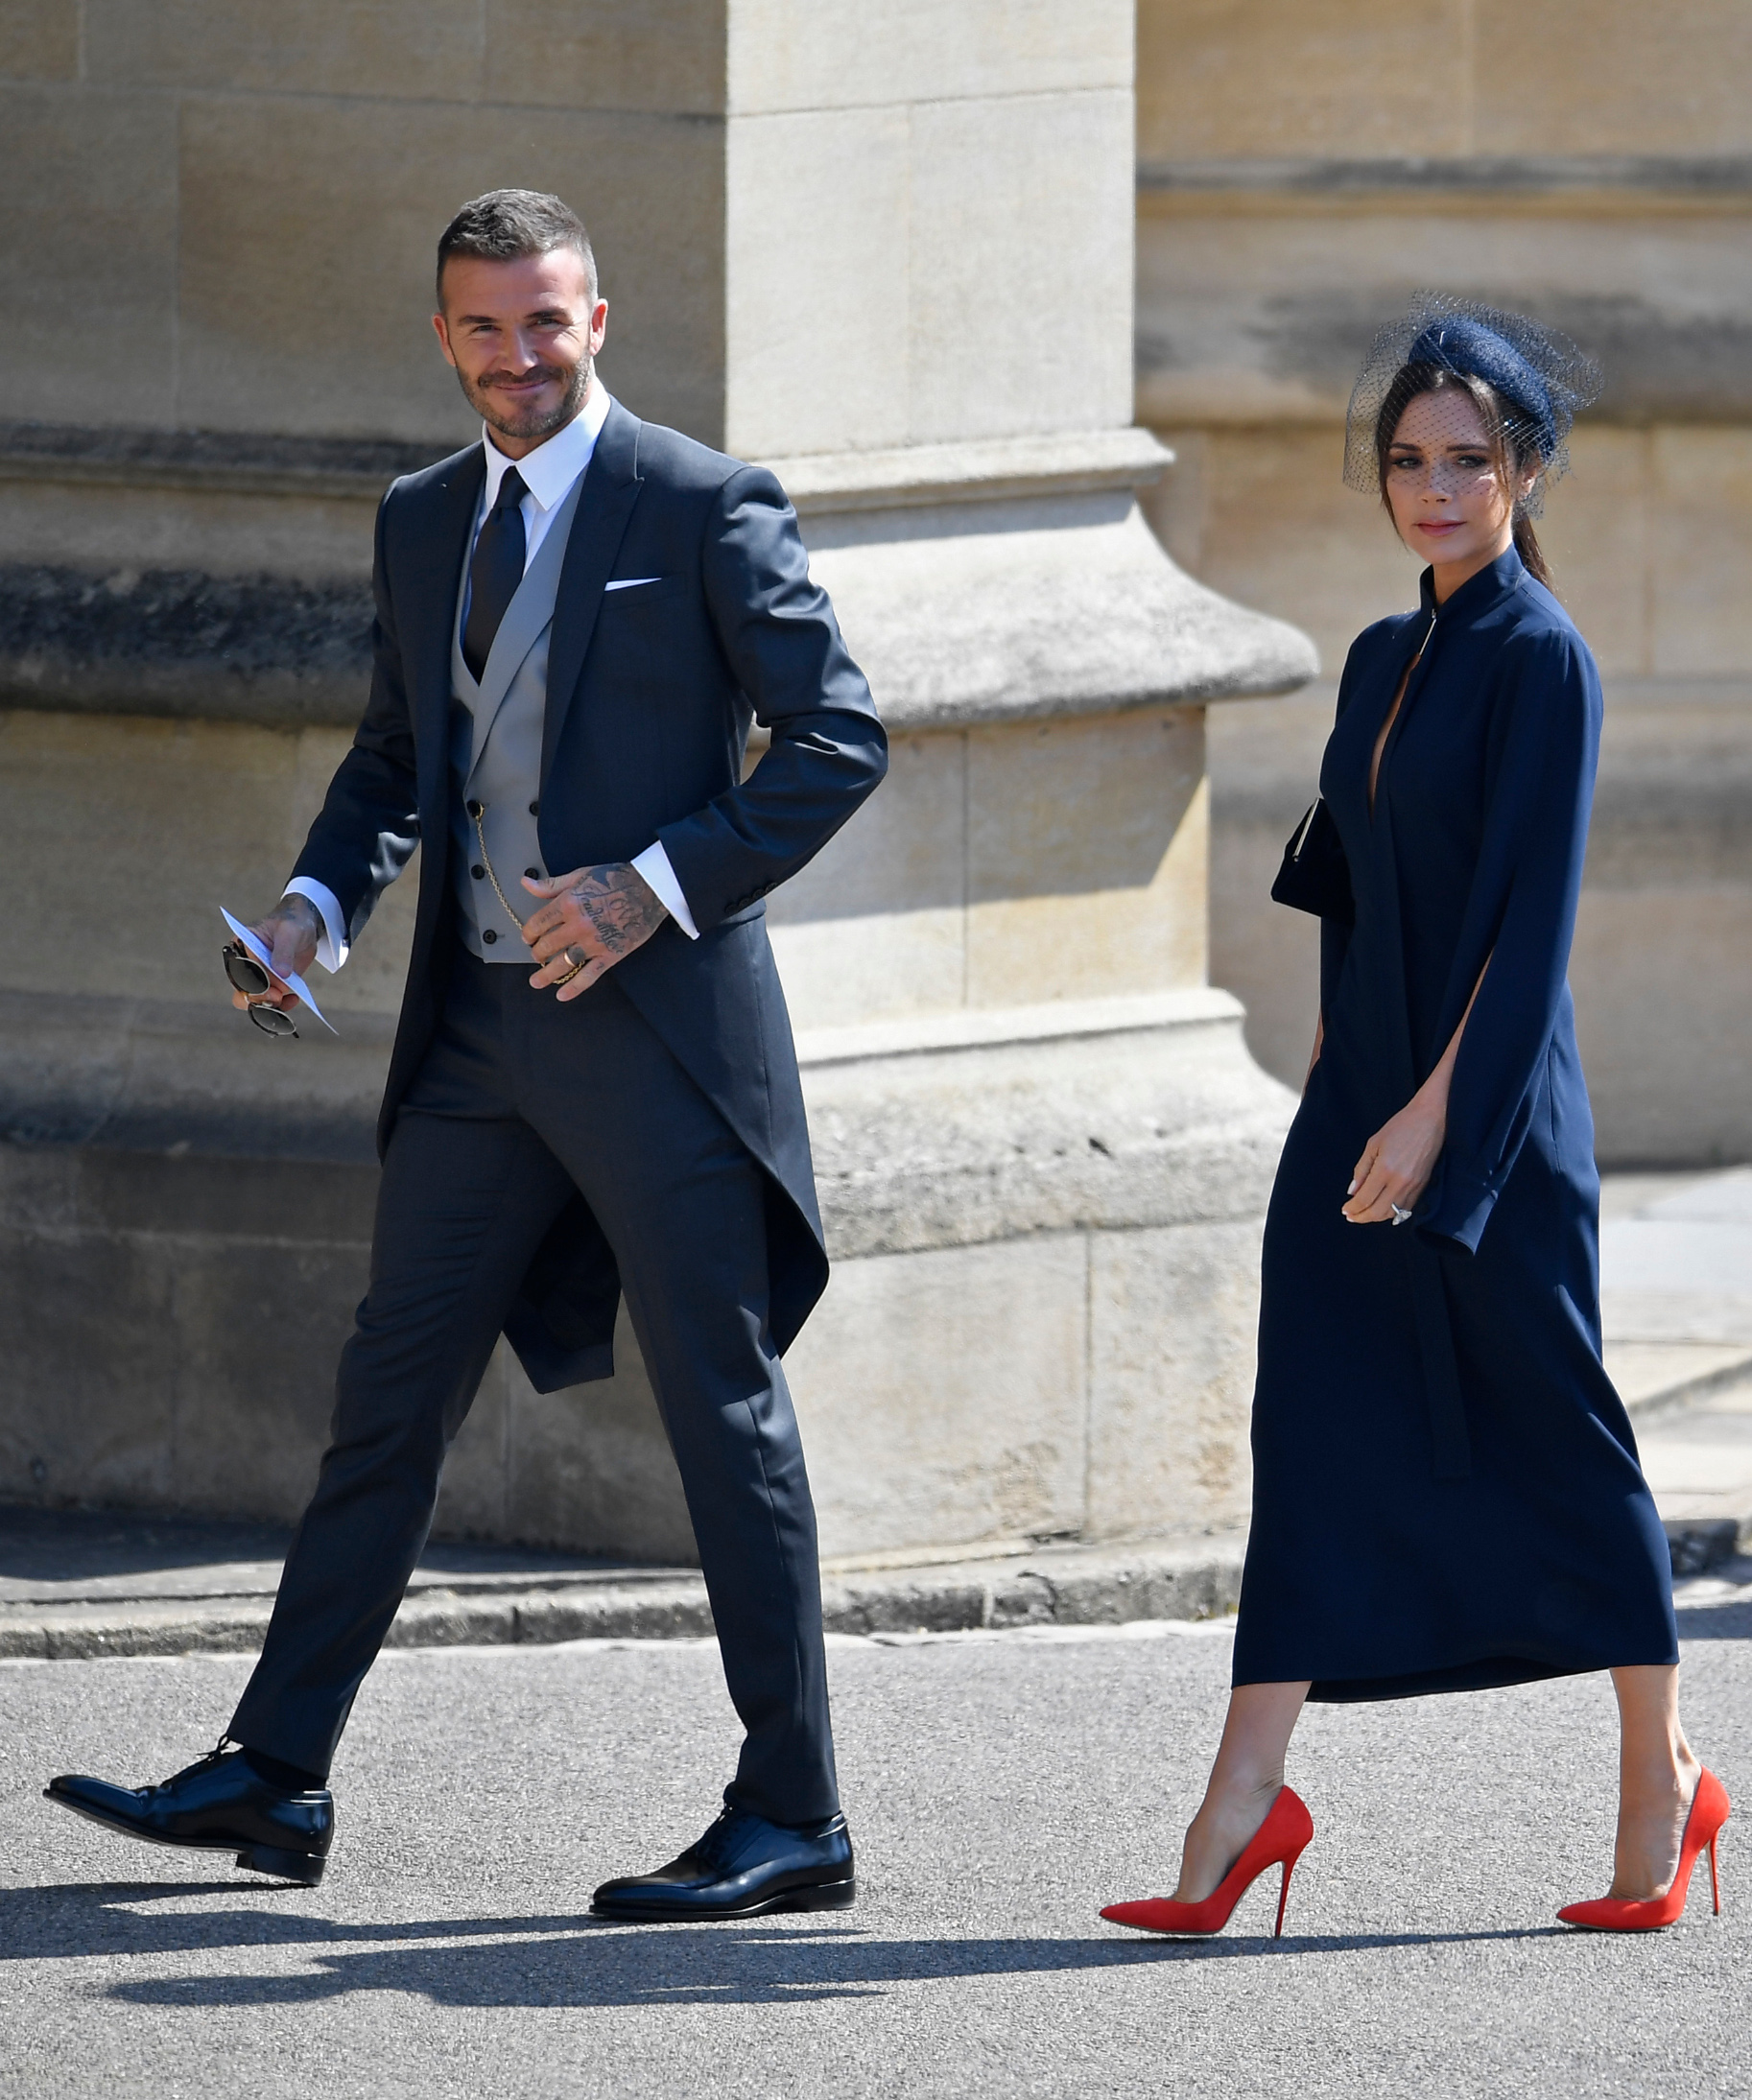 WINDSOR, UNITED KINGDOM - MAY 19:  David Beckham and Victoria Beckham arrive at St George's Chapel at Windsor Castle before the wedding of Prince Harry to Meghan Markle on May 19, 2018 in Windsor, England. (Photo by Toby Melville- WPA Pool/Getty Images)